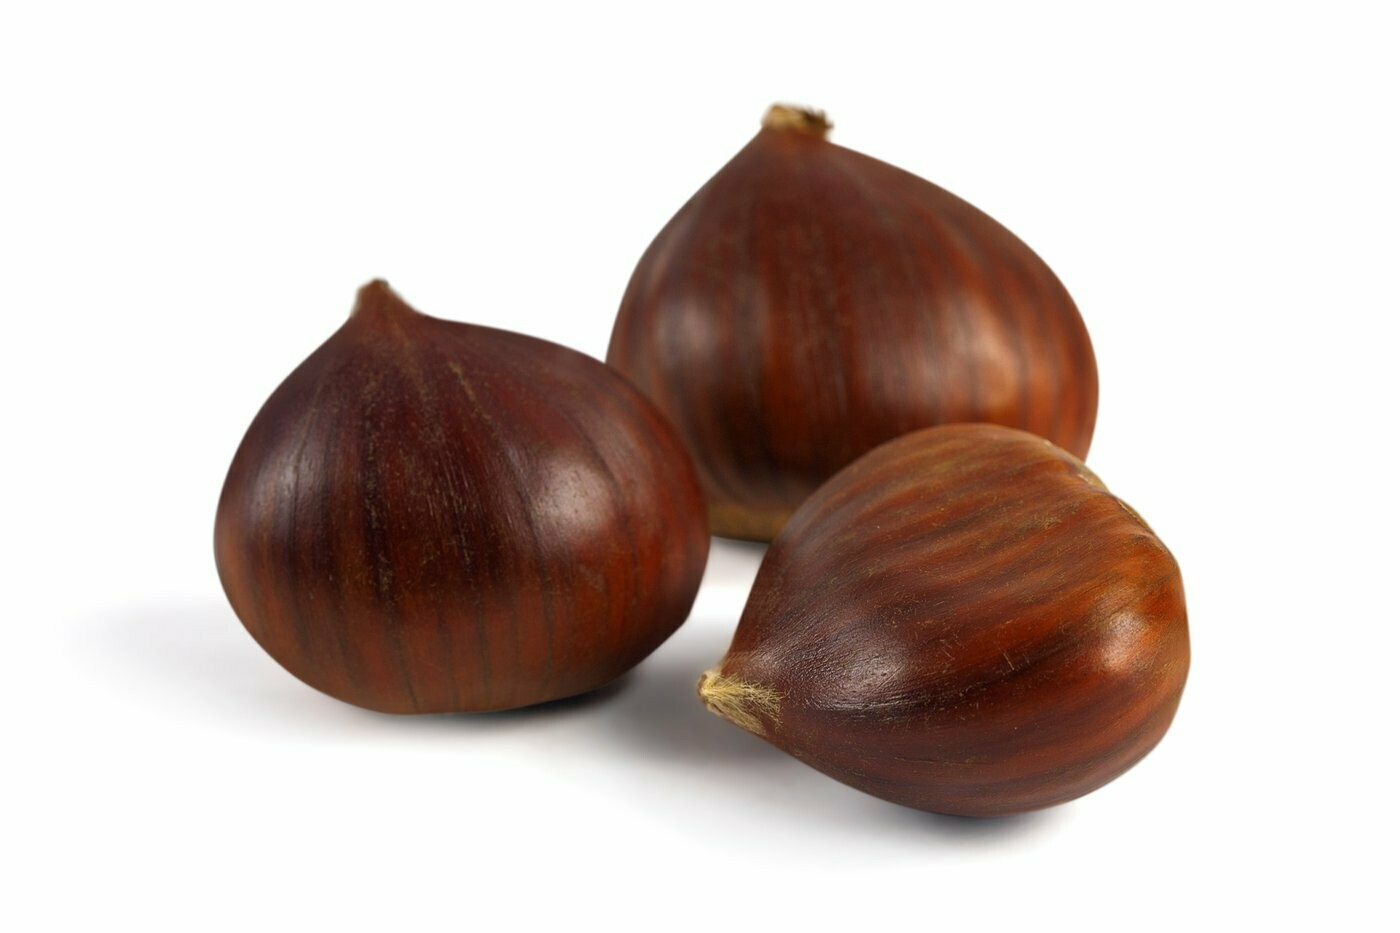 Chestnuts / Castanhas (from Portugal)         (16 Ounces)